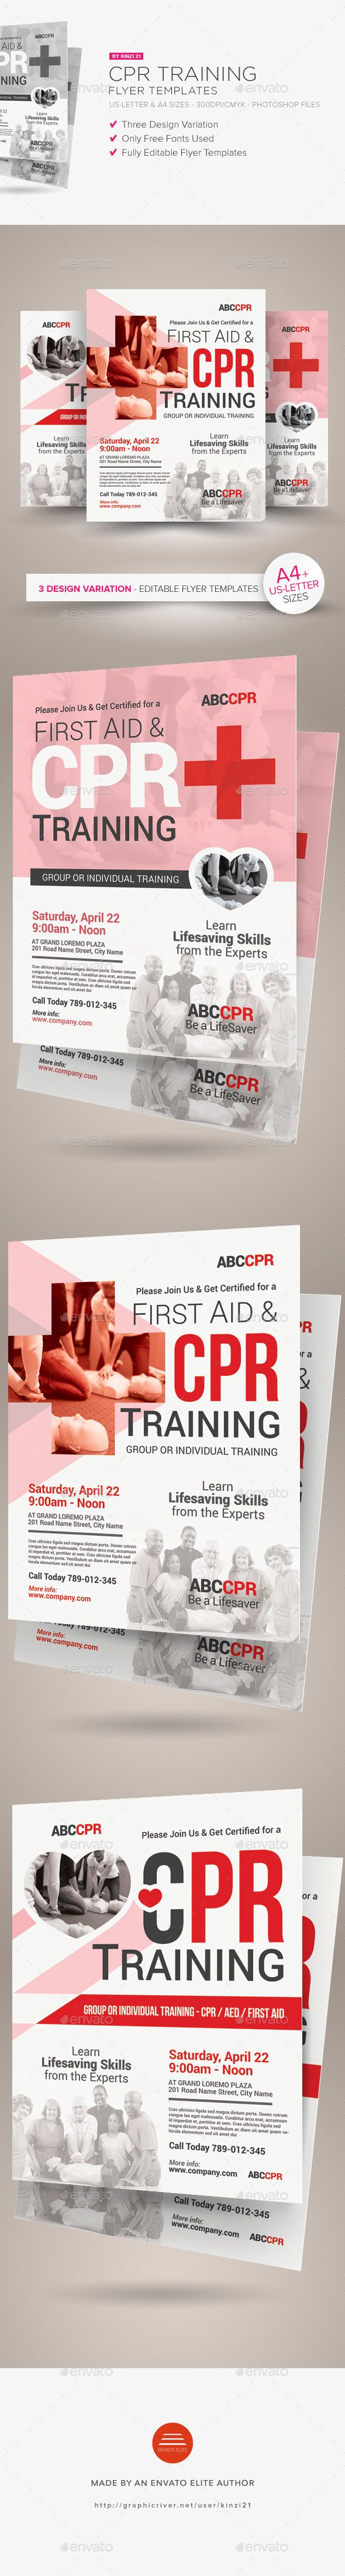 cpr training flyer templates corporate flyers flyer templats